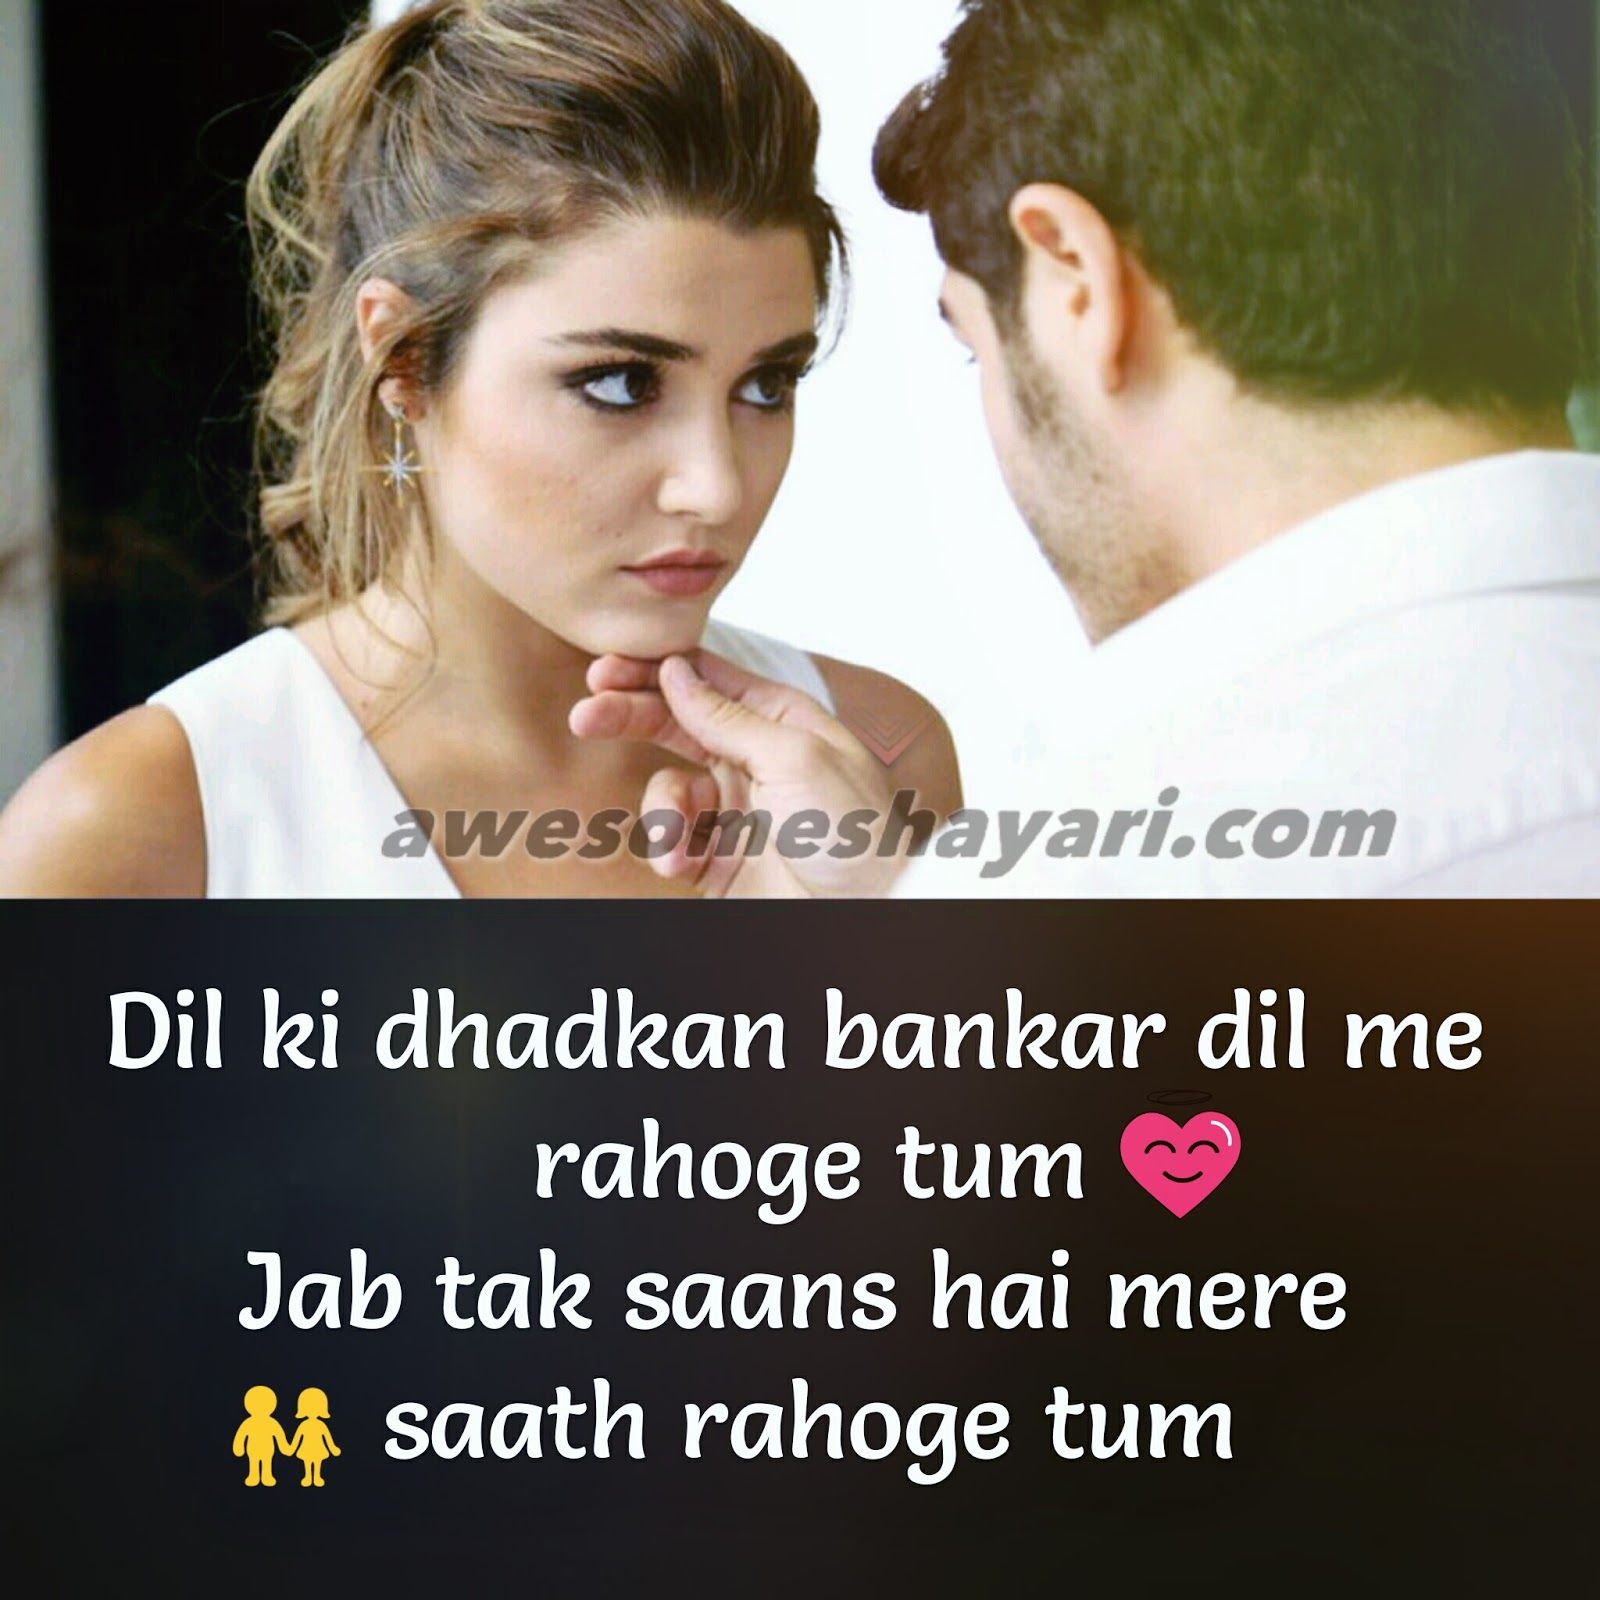 Awesome Shayari Images, Love Shayari, Heart Touching